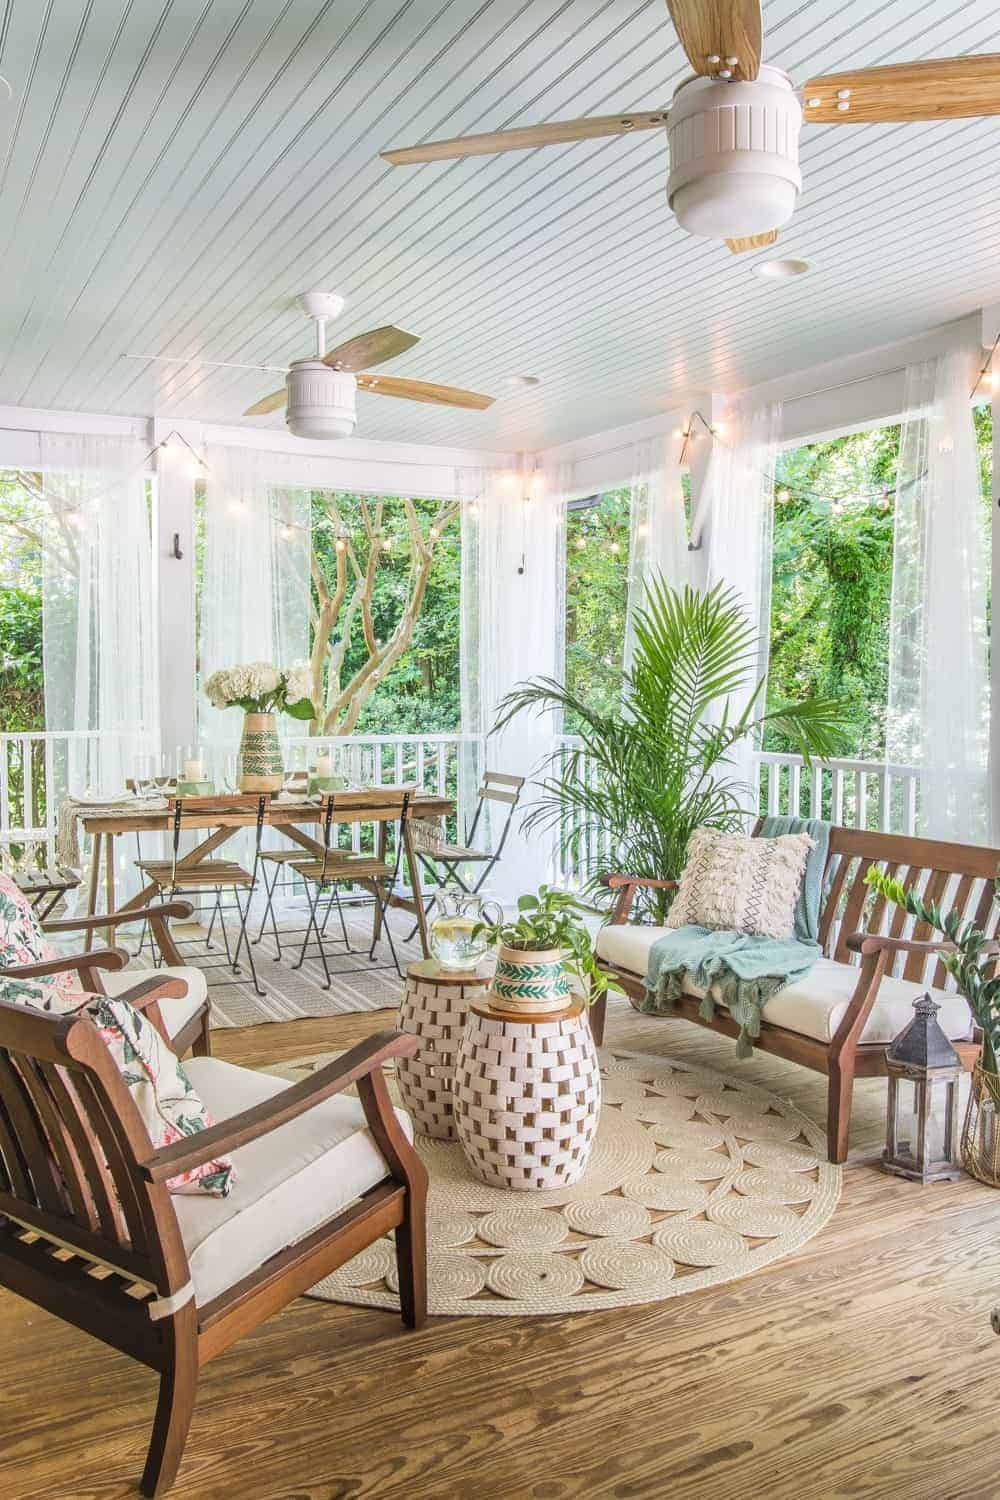 Boho style back porch with curtains and ceiling fans